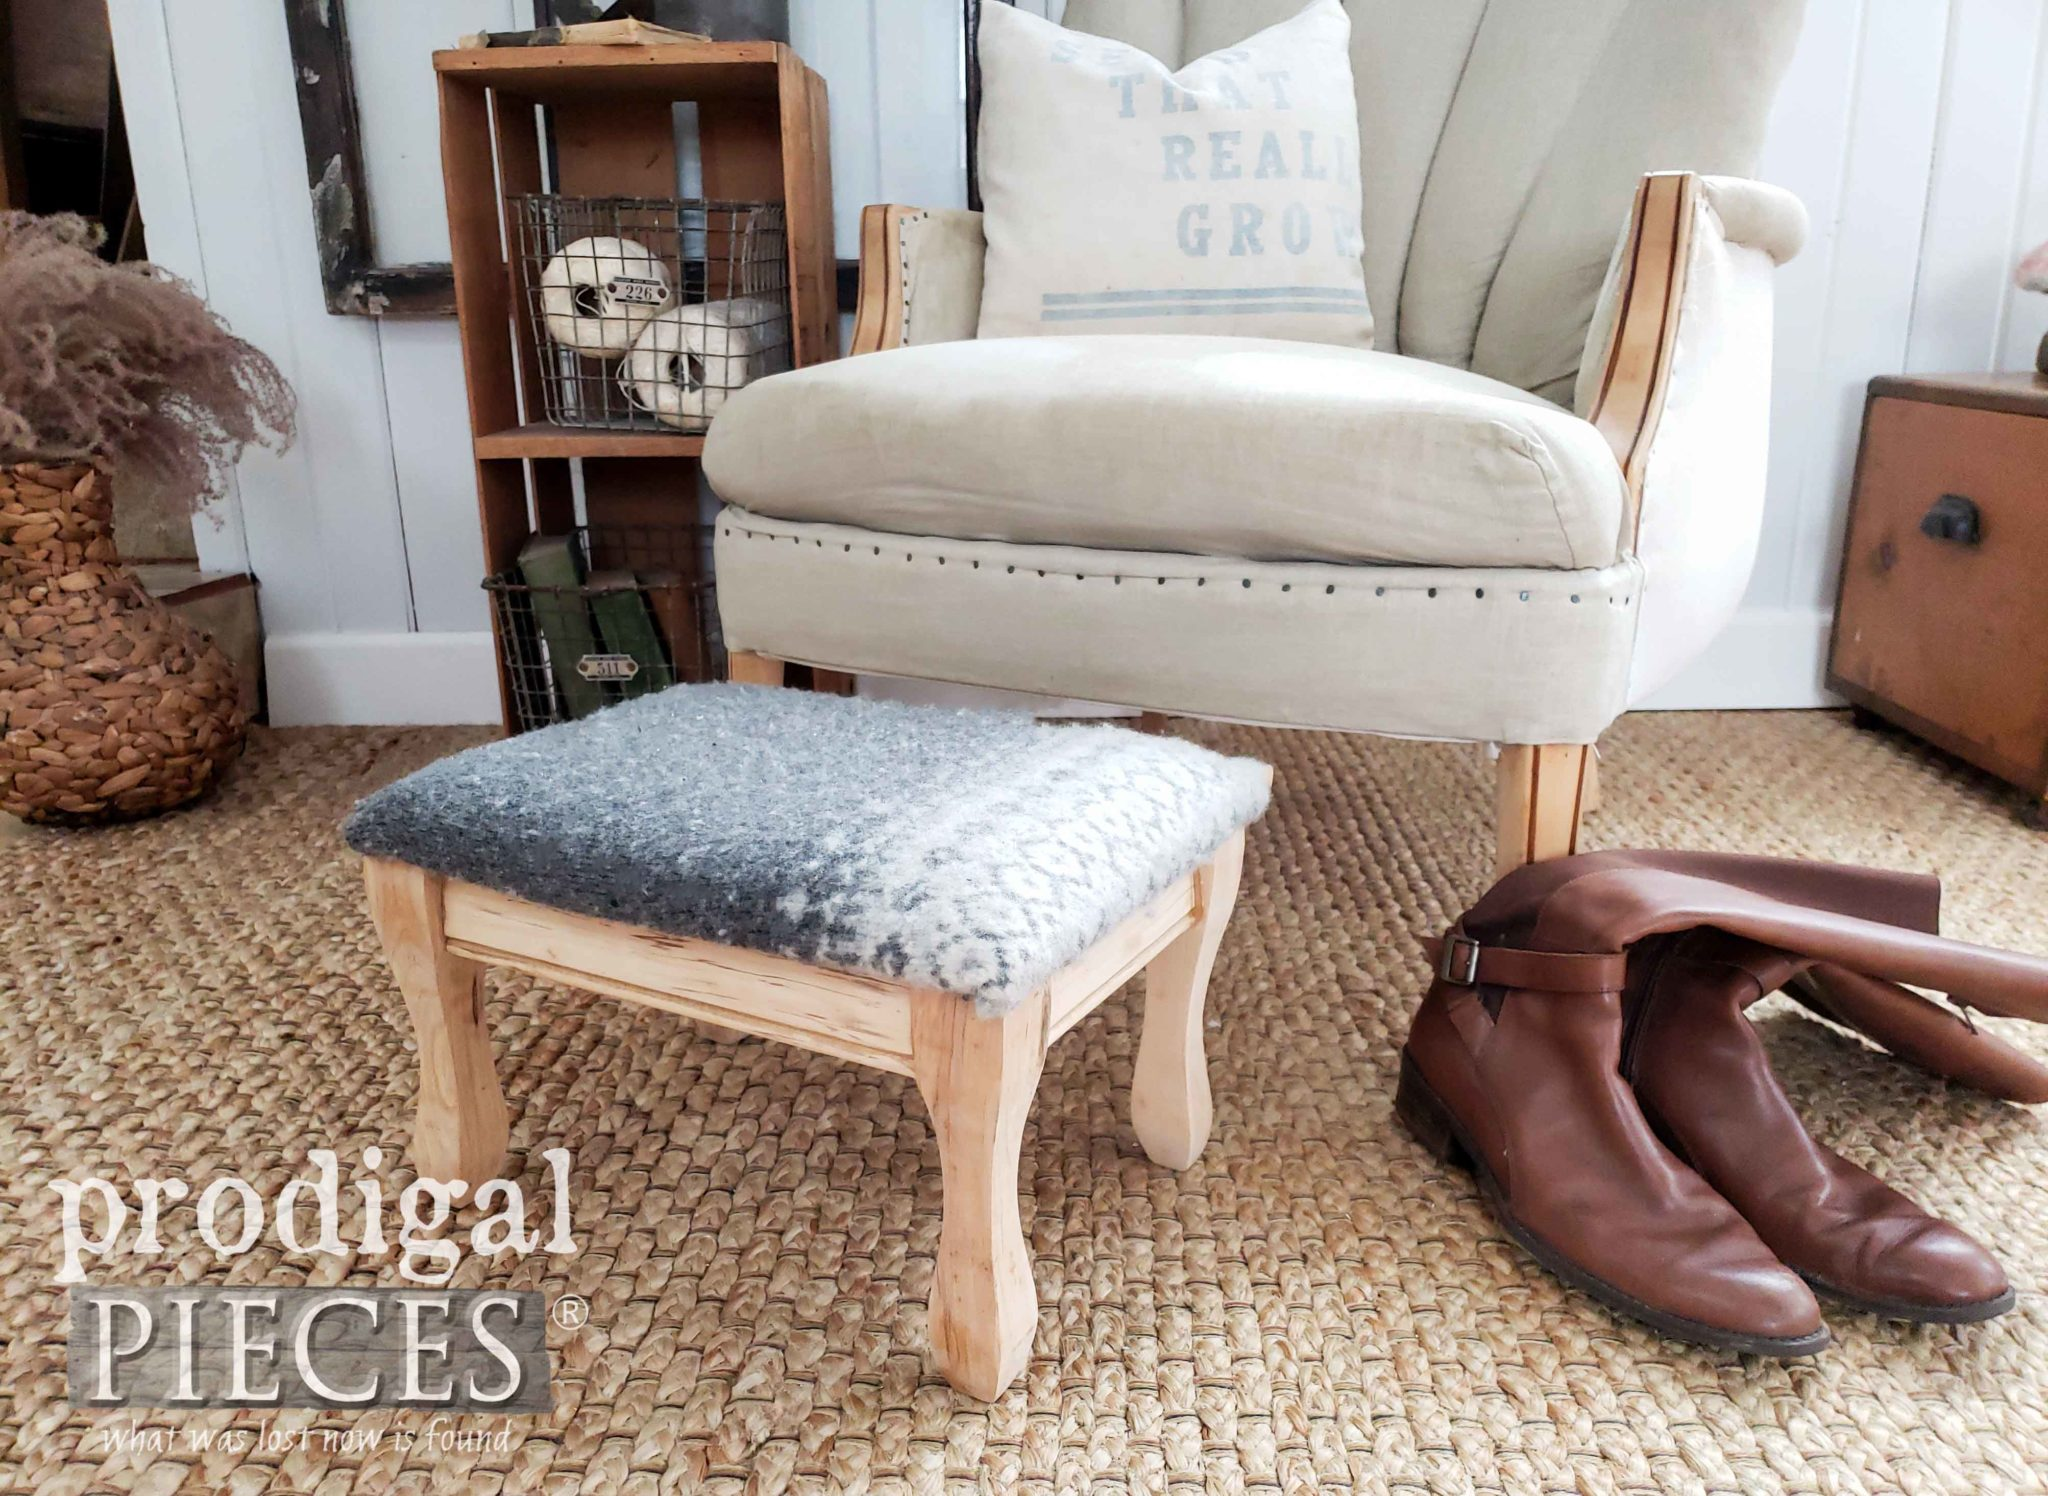 Nordic Farmhouse Style Footstool Created Using a Felted Wool Sweater | Video Tutorial by Larissa of Prodigal Pieces | prodigalpieces.com #prodigalpieces #farmhouse #nordic #handmade #furniture #farmhouse #diy #videos #shopping #home #homedecor #homedecorideas